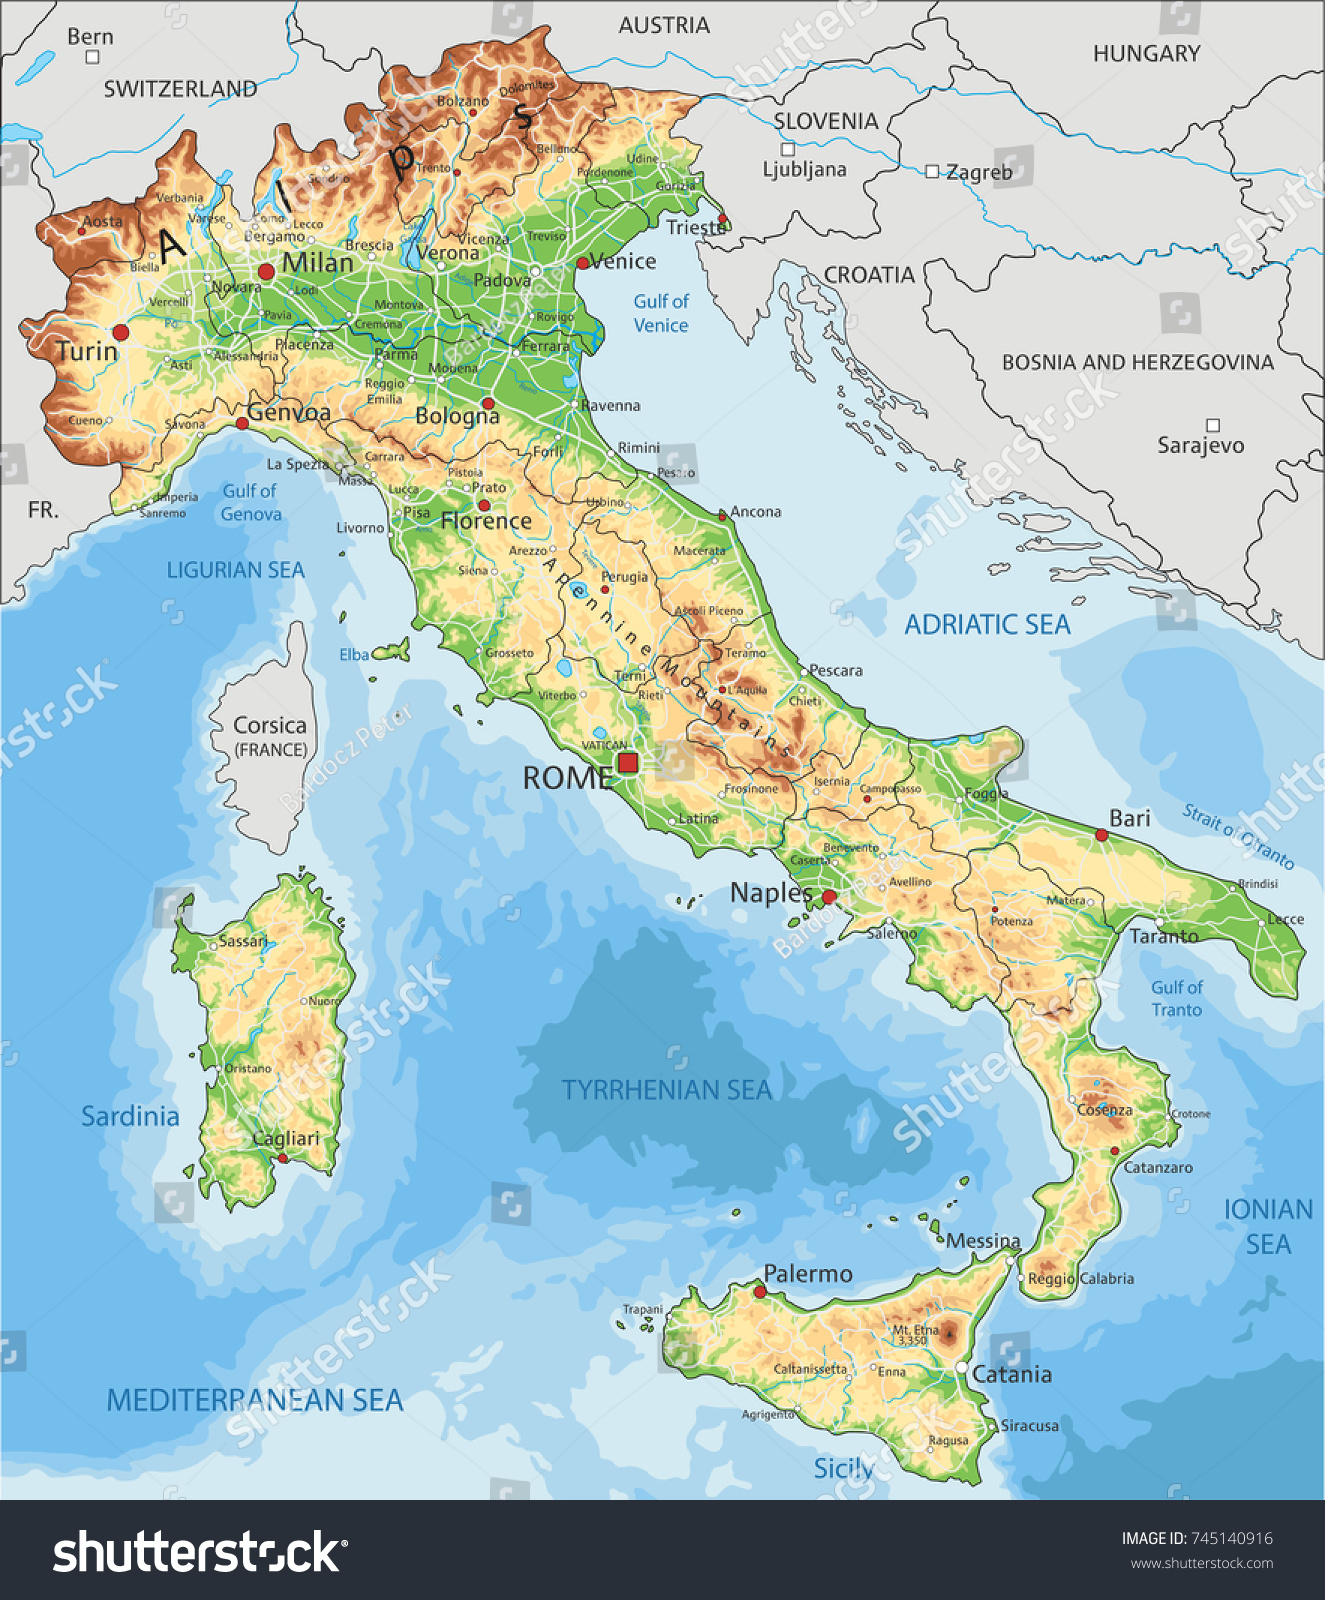 Detailed Italy Physical Map Stock Vector Shutterstock - Croatia physical map